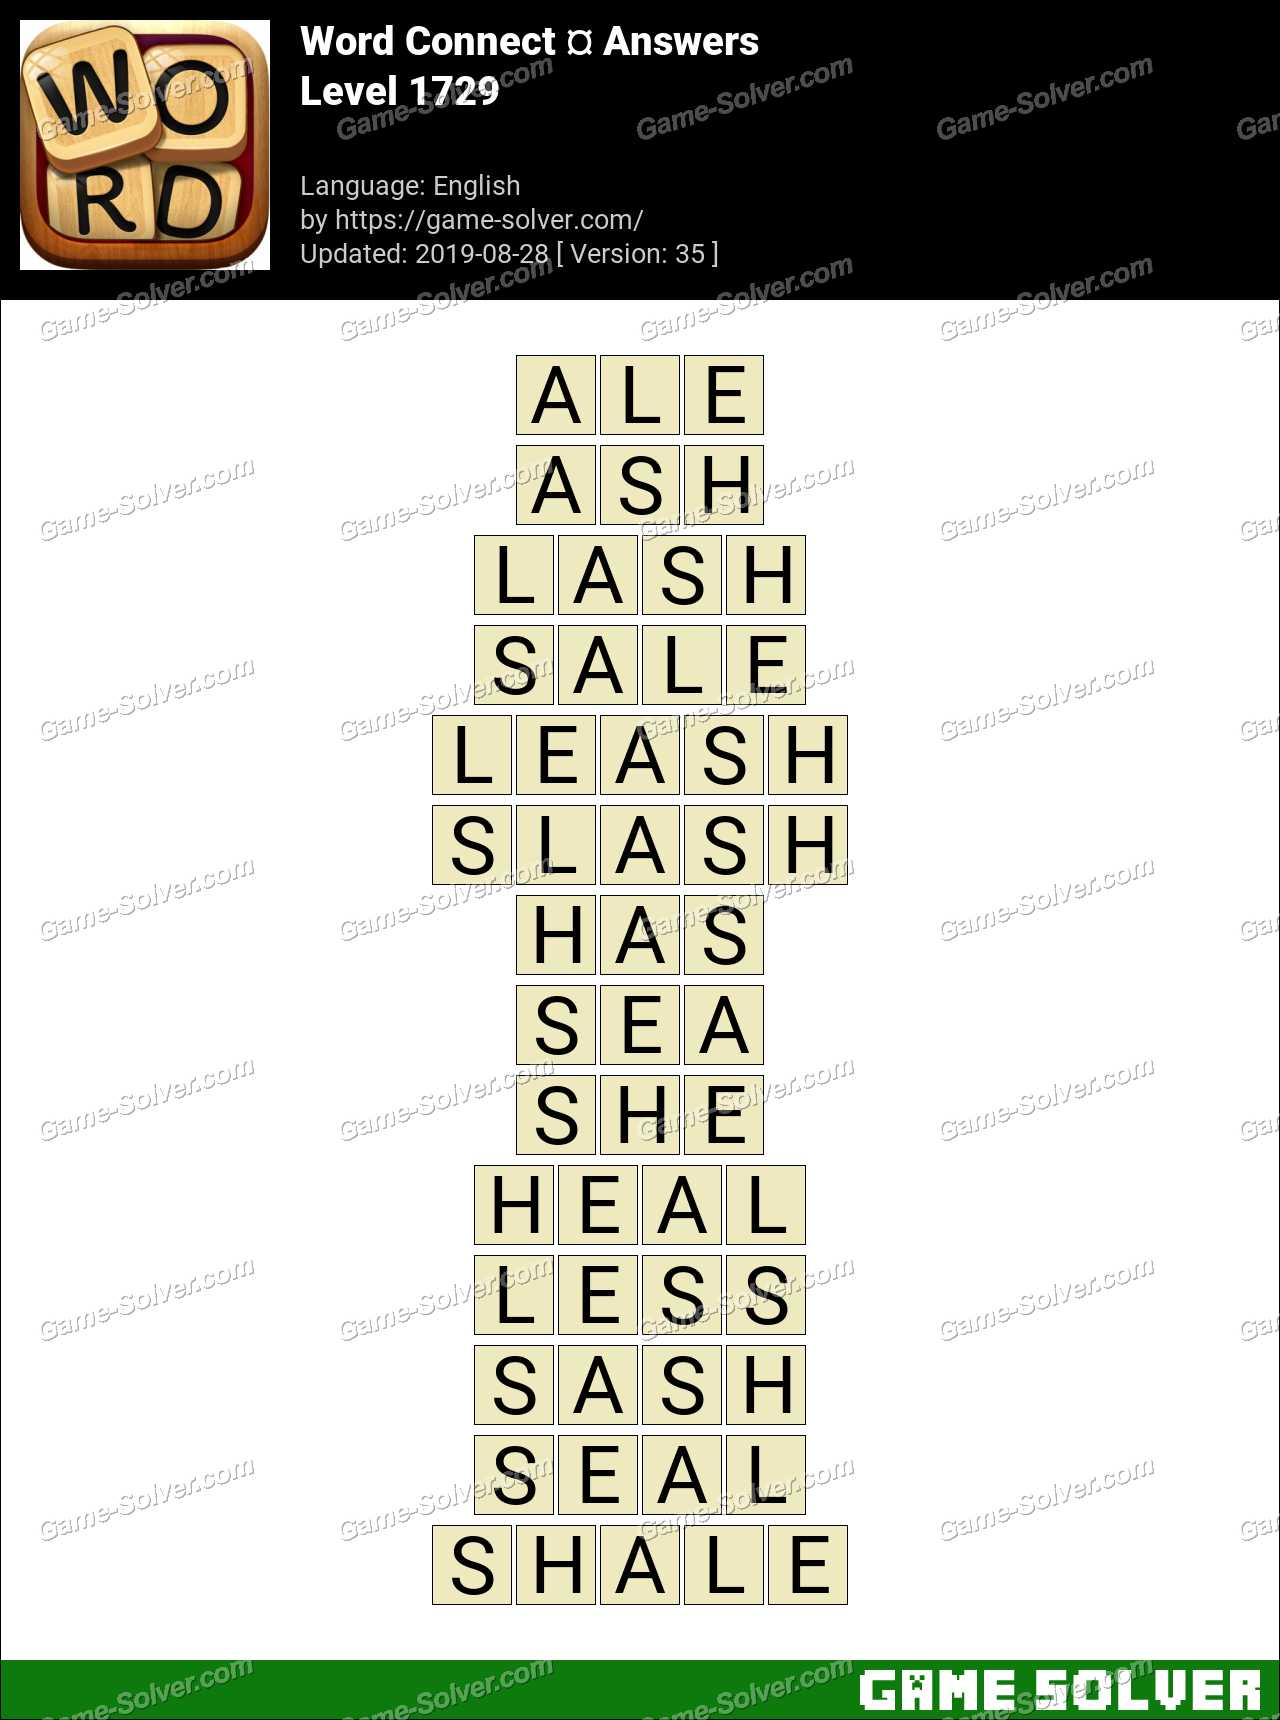 Word Connect Level 1729 Answers